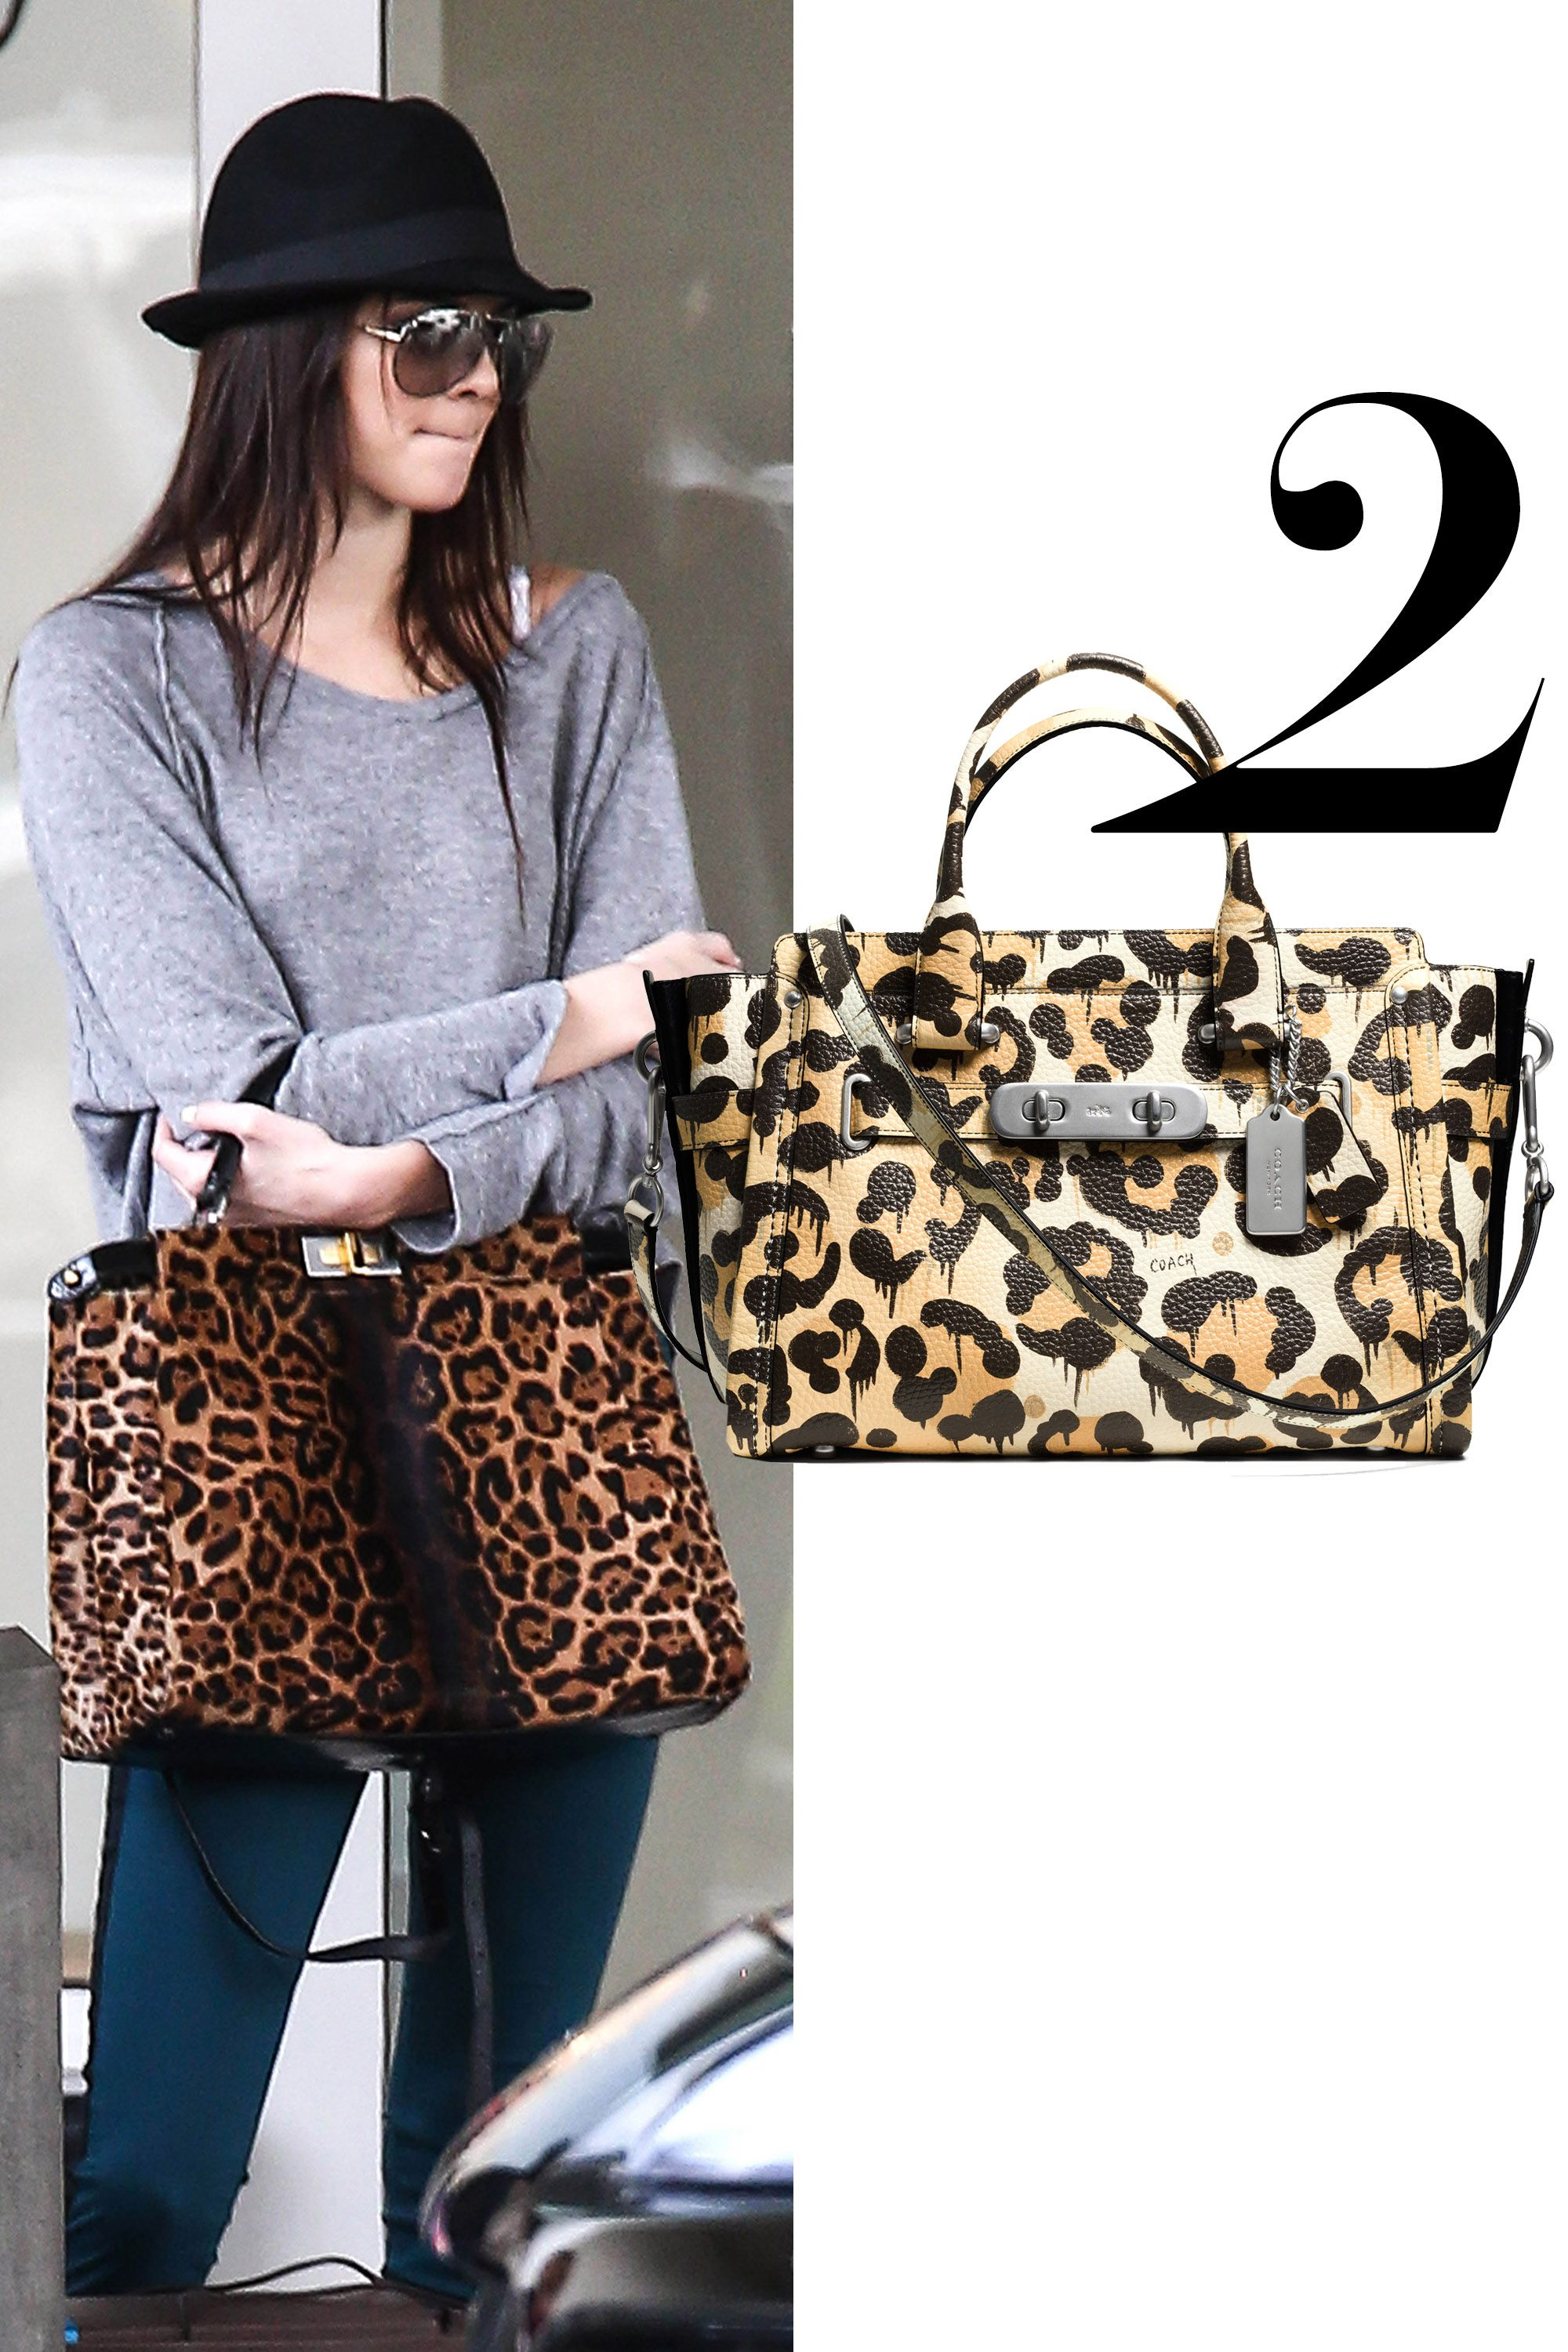 "<em>Coach Swagger bag, $650, <a href=""http://www.coach.com/coach-designer-handbags-coach-swagger-carryall-in-wild-beast-print-pebble-leather/35800.html?cgid=women-handbags-satchels&dwvar_color=WRNAT&cid=D_B_HBZ_8898"">coach.com</a>.</em>"